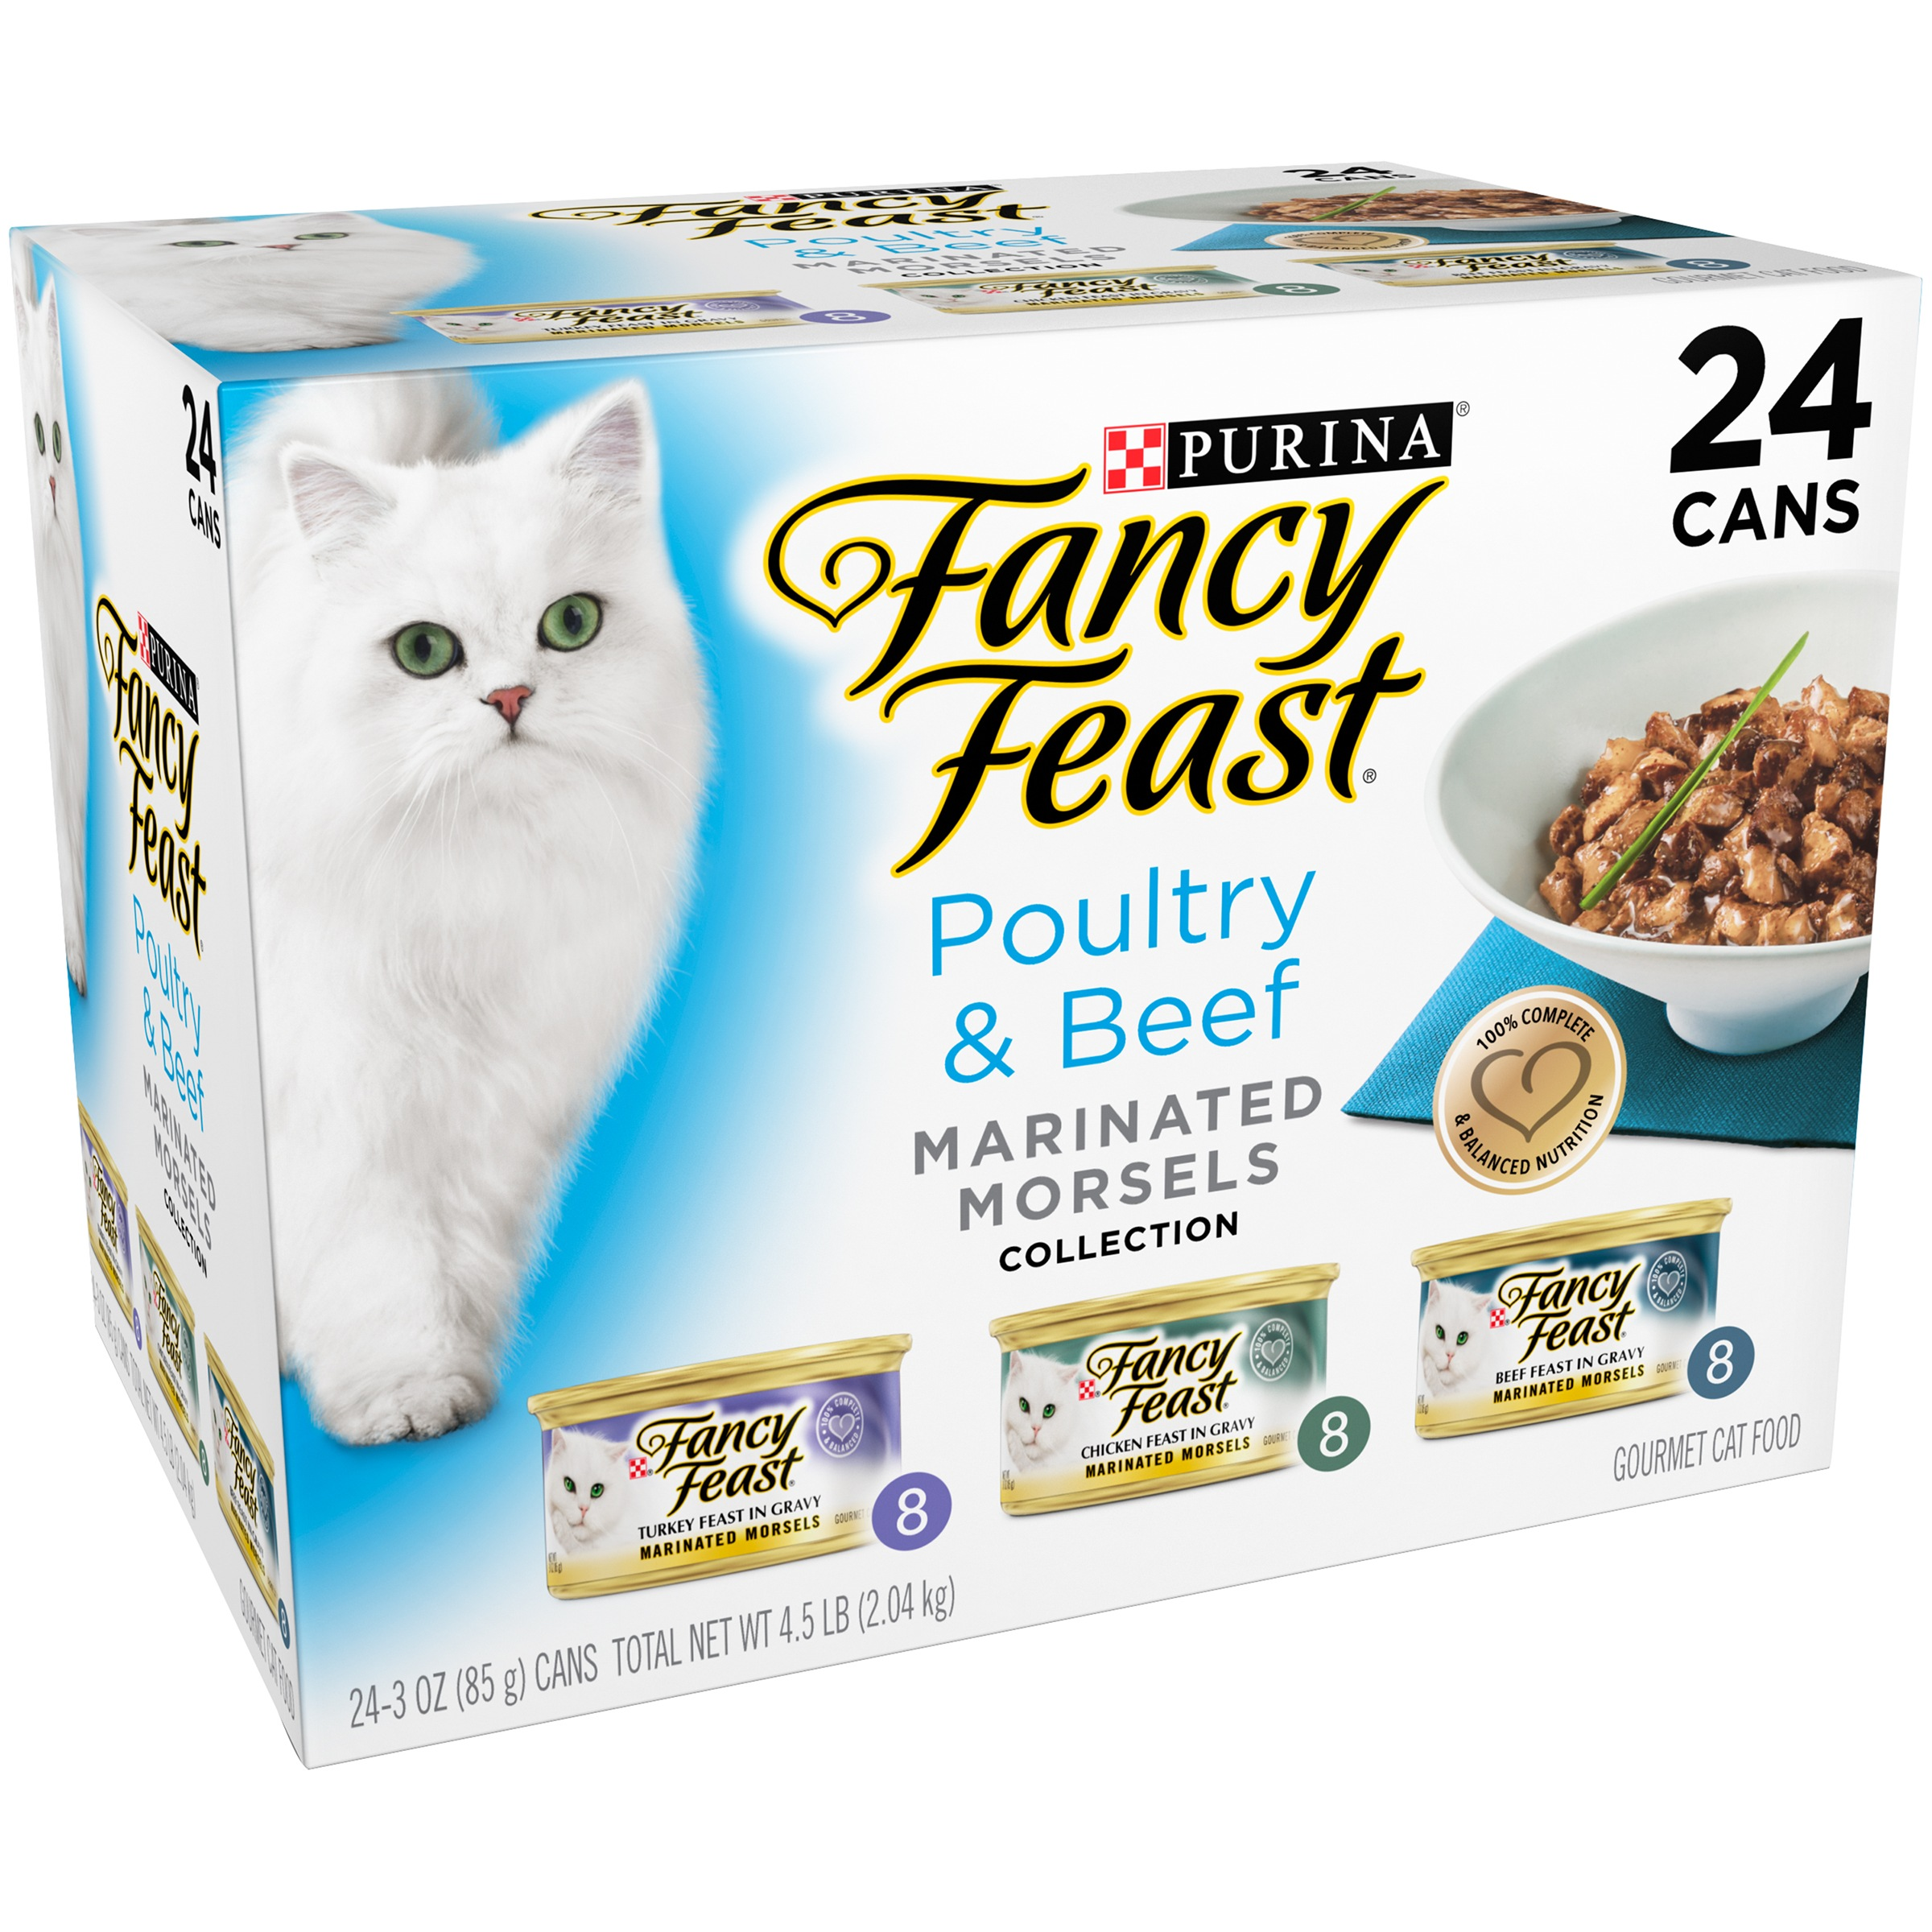 Purina Fancy Feast Marinated Morsels Poultry & Beef Collection Cat Food 24-3 oz. Cans